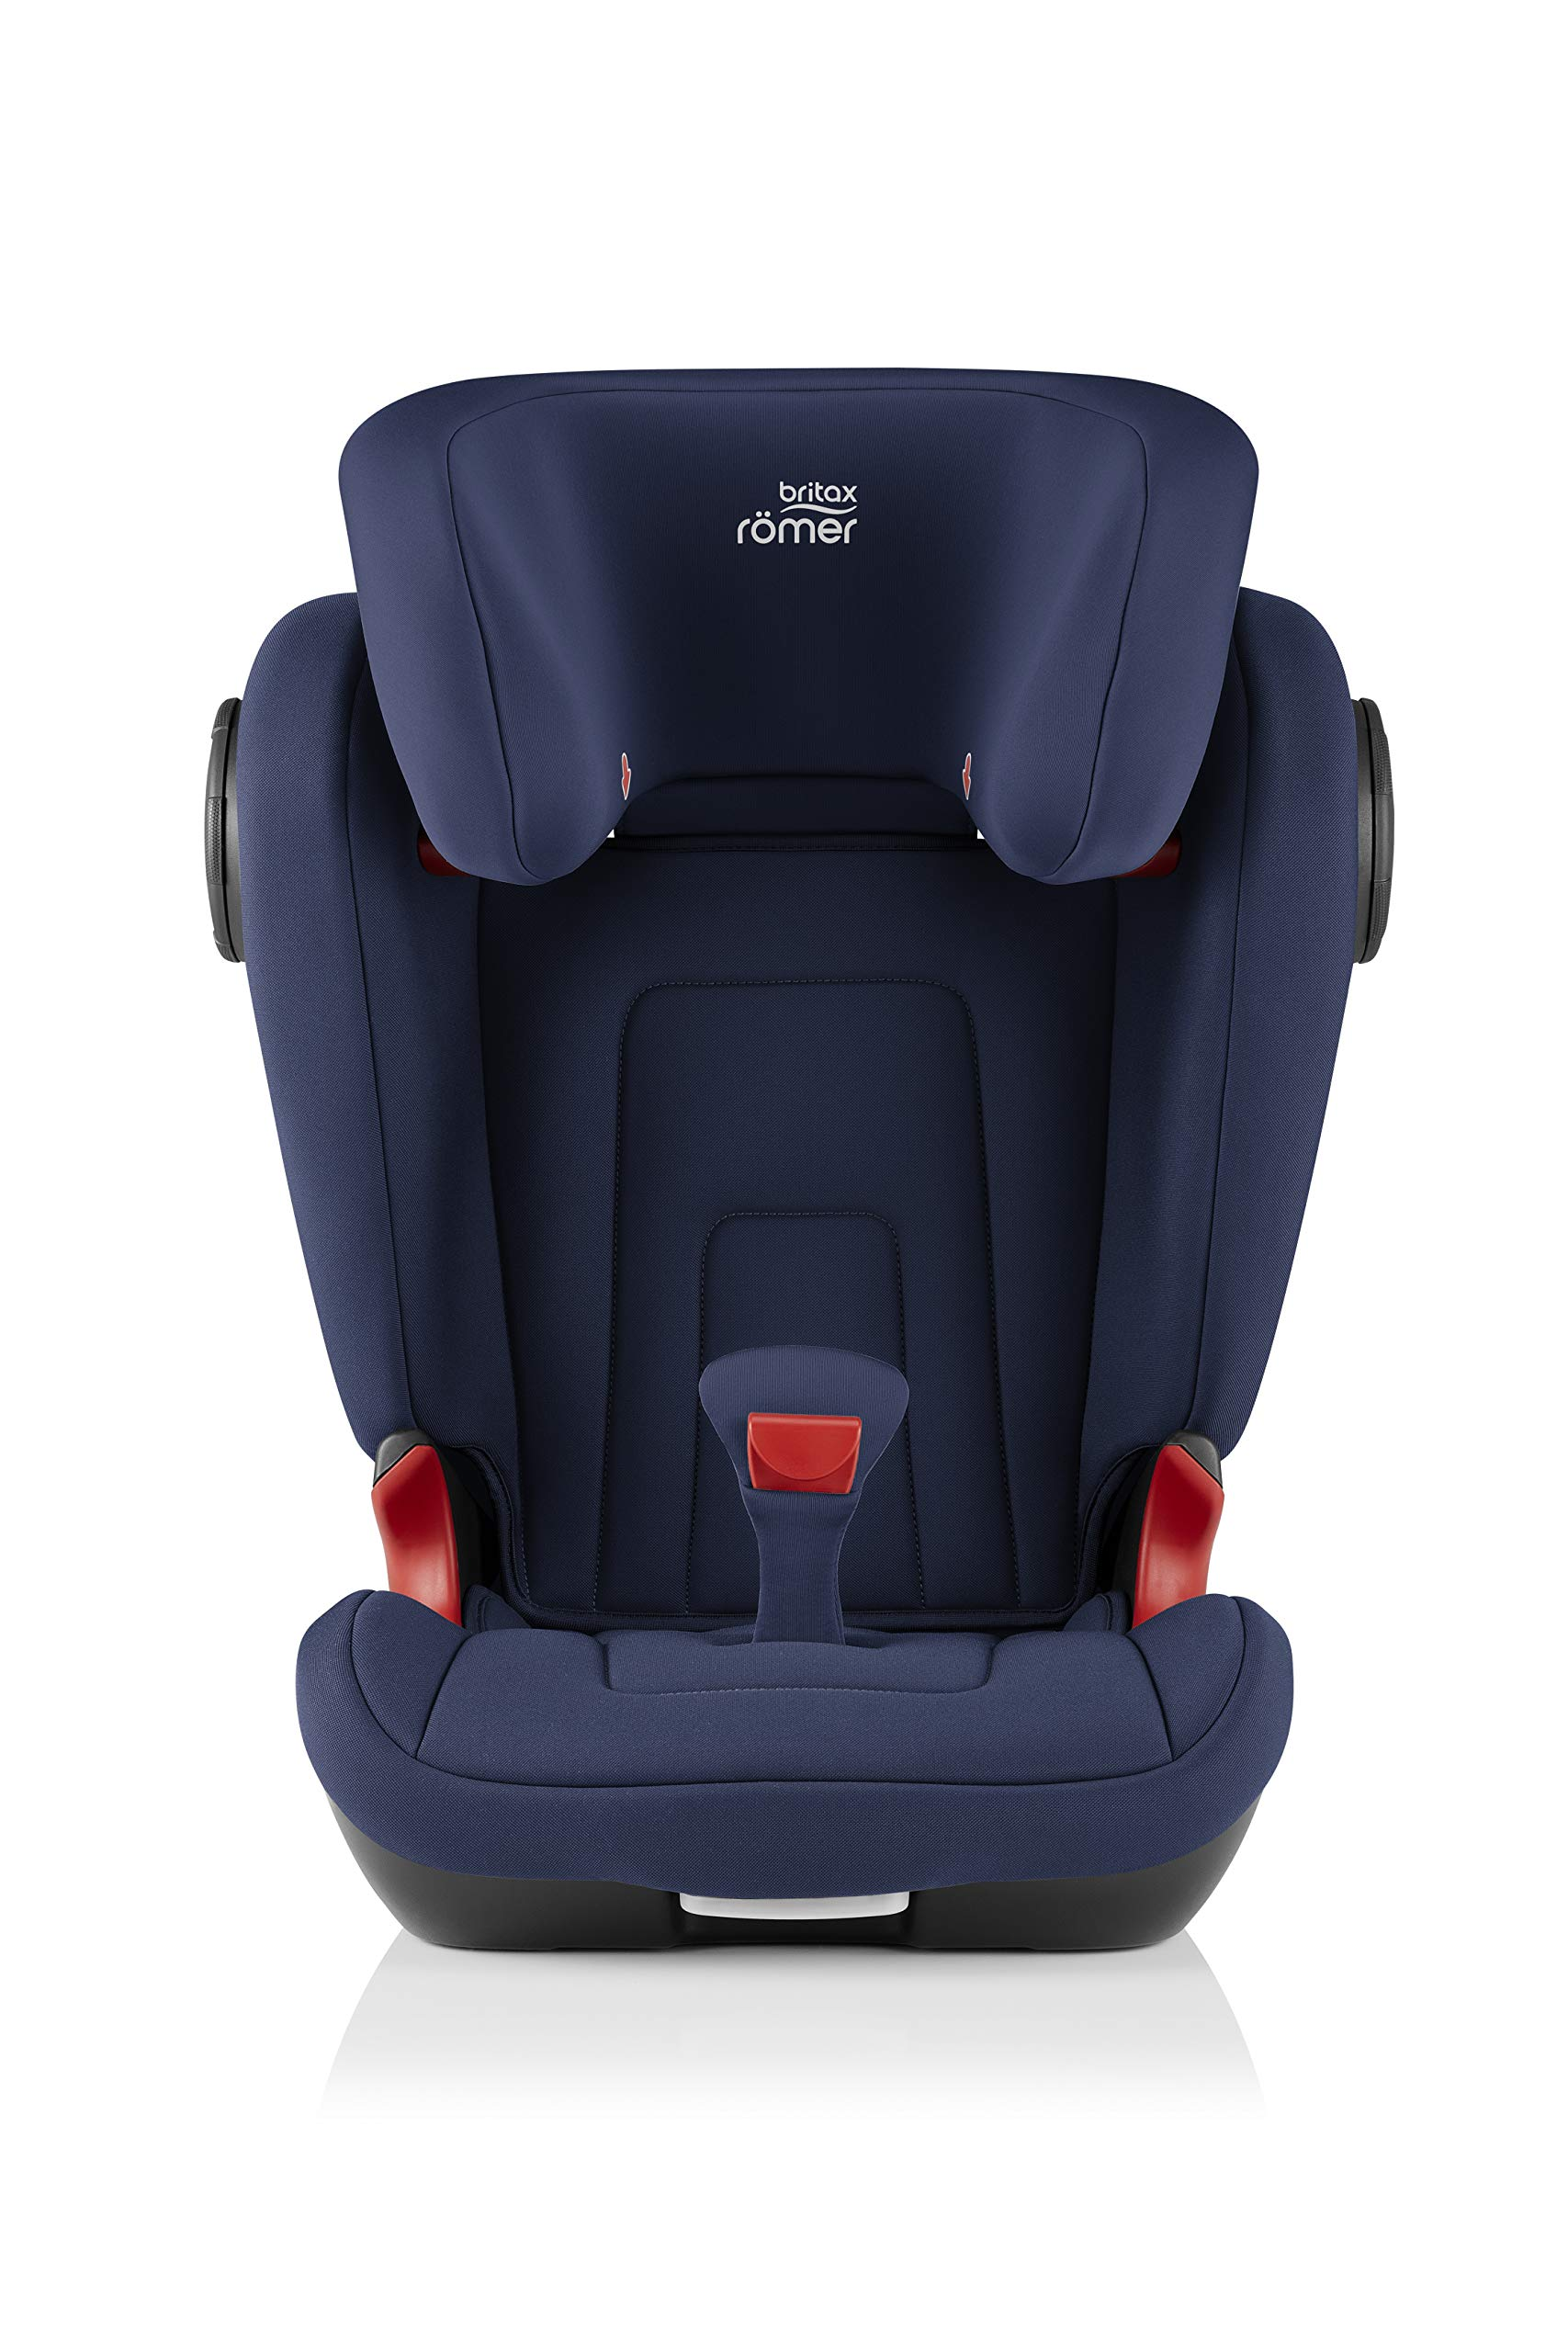 Britax Römer KIDFIX² S Group 2-3 (15-36kg) Car Seat - Moonlight Blue  Advanced side impact protection - sict offers superior protection to your child in the event of a side collision. reducing impact forces by minimising the distance between the car and the car seat. Secure guard - helps to protect your child's delicate abdominal area by adding an extra - a 4th - contact point to the 3-point seat belt. High back booster - protects your child in 3 ways: provides head to hip protection; belt guides provide correct positioning of the seat belt and the padded headrest provides safety and comfort. 2